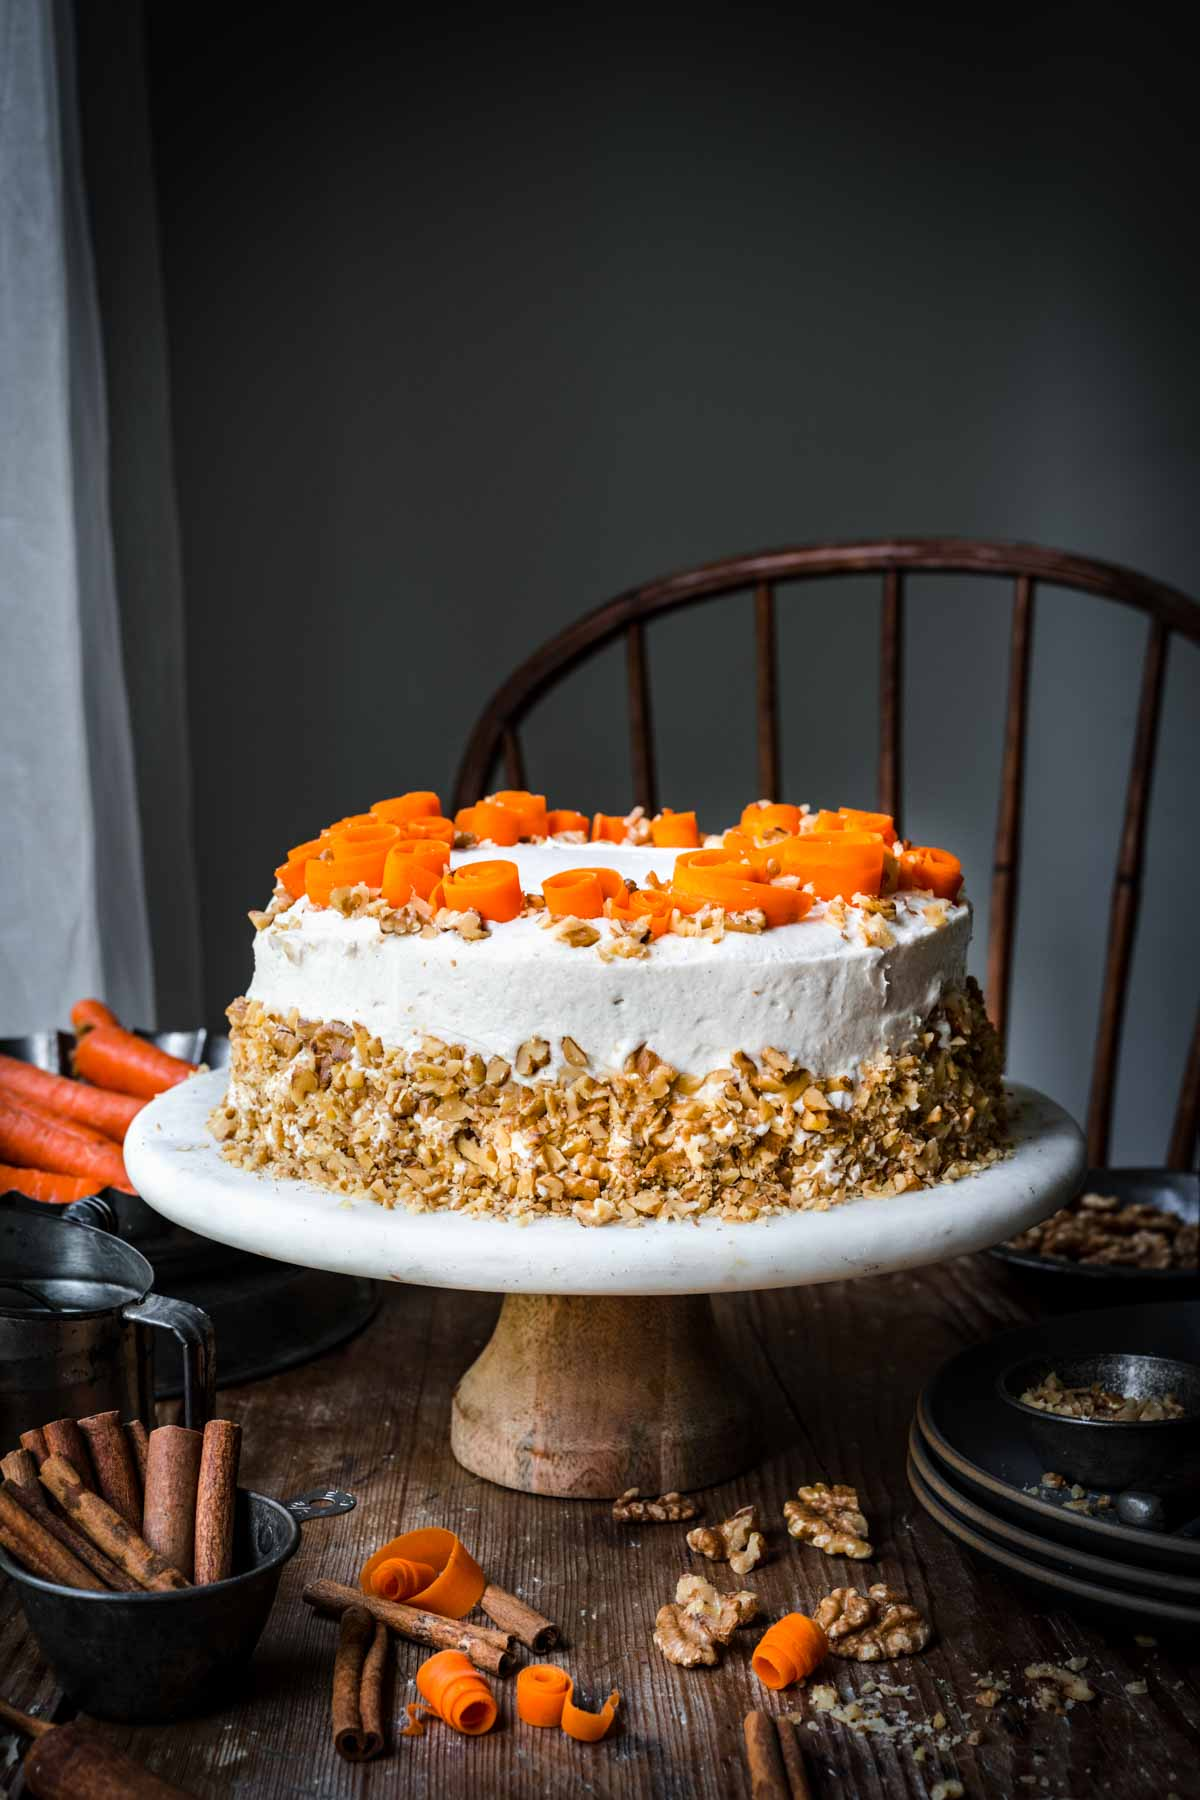 Front view of vegan carrot cake with carrot swirls and crushed walnuts.